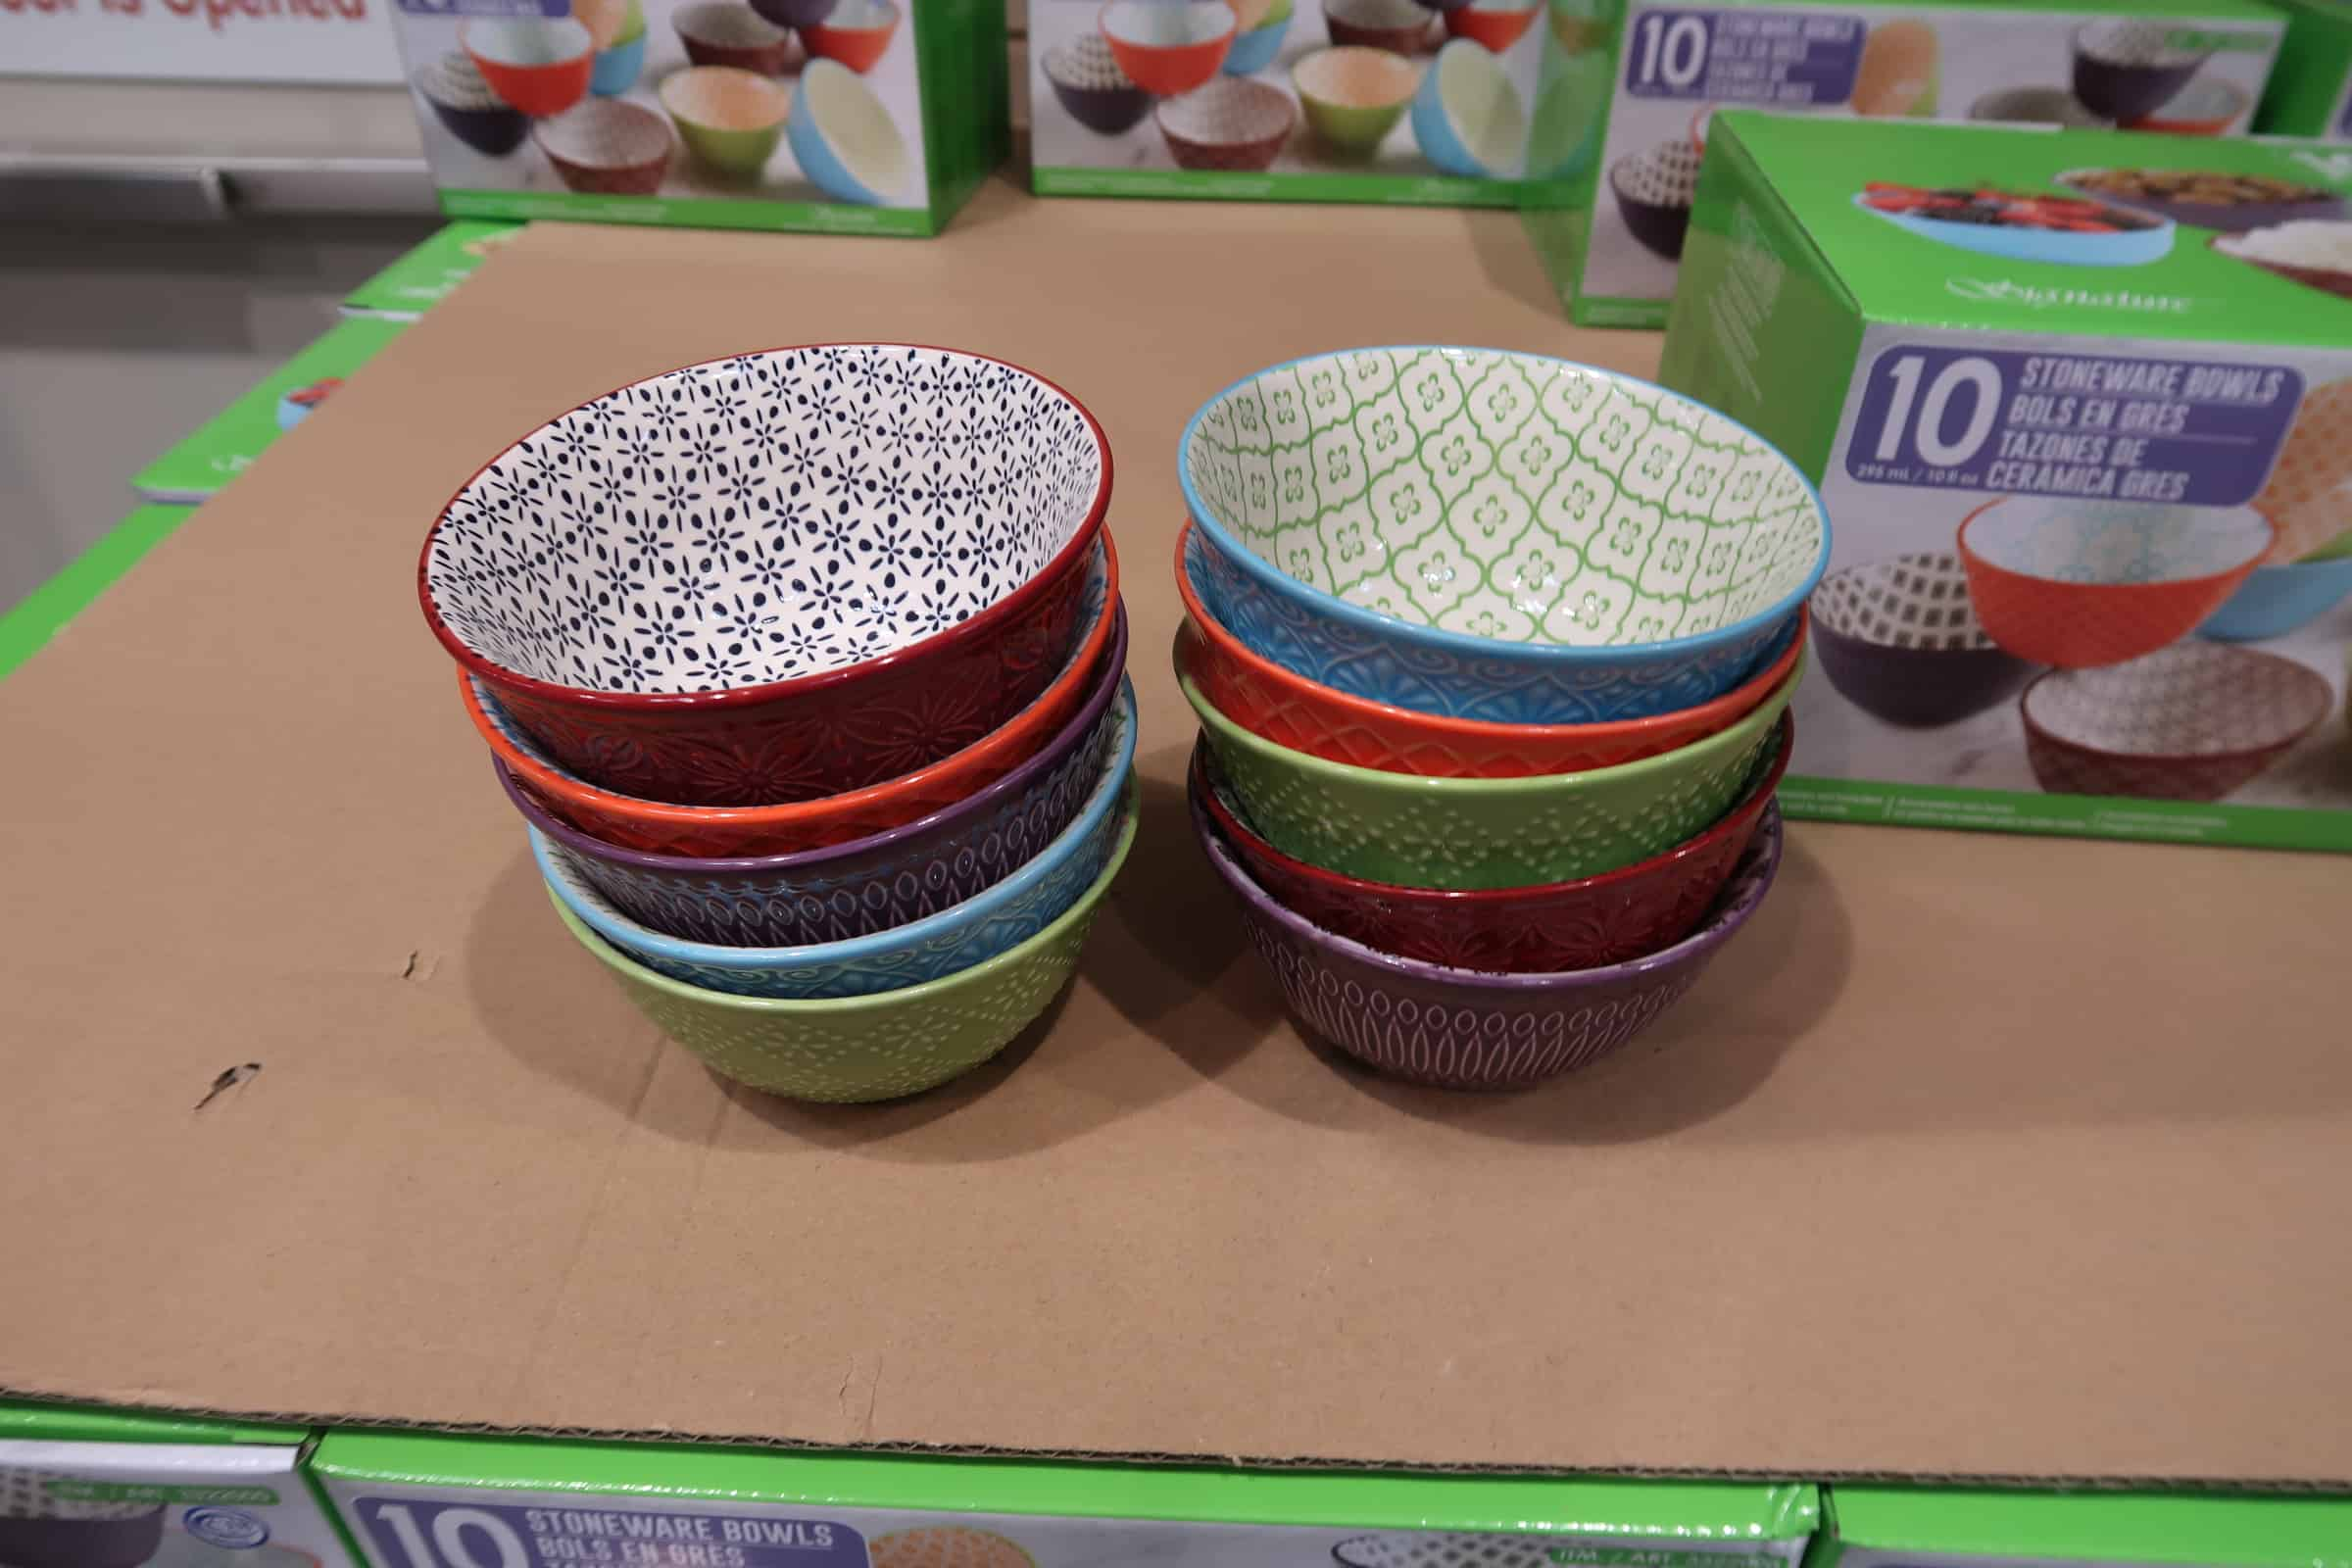 10 Pc. Stoneware Bowl Set $9.99